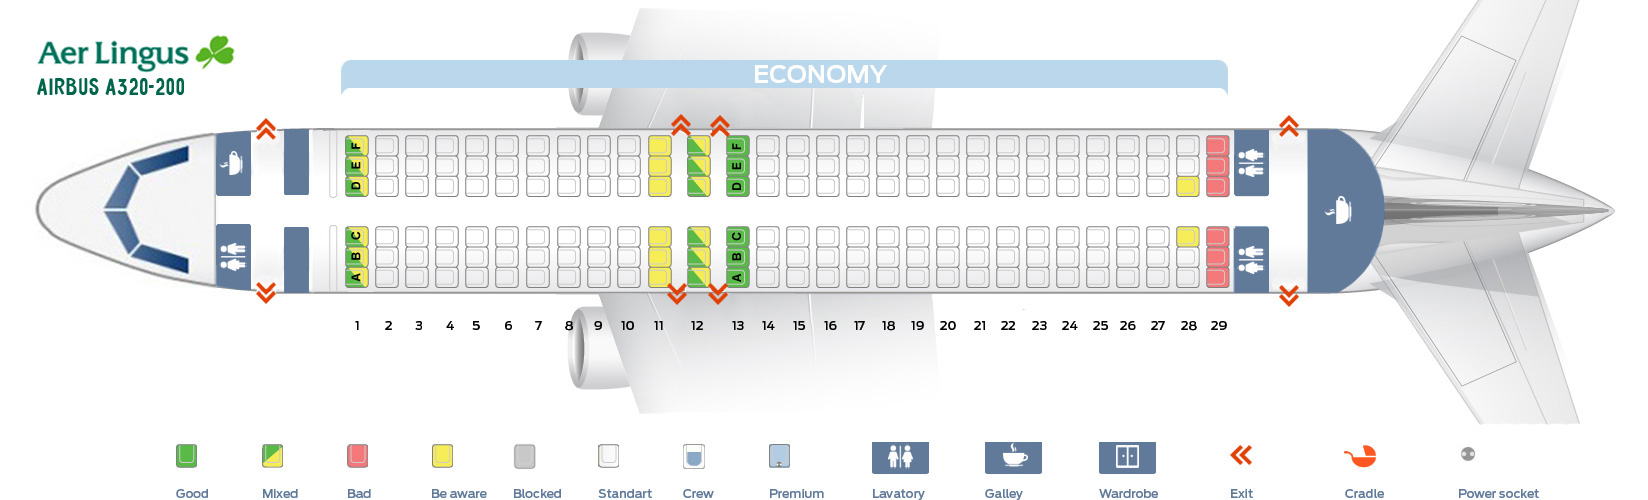 Seat Map Airbus A320 200 Aer Lingus Best Seats In Plane